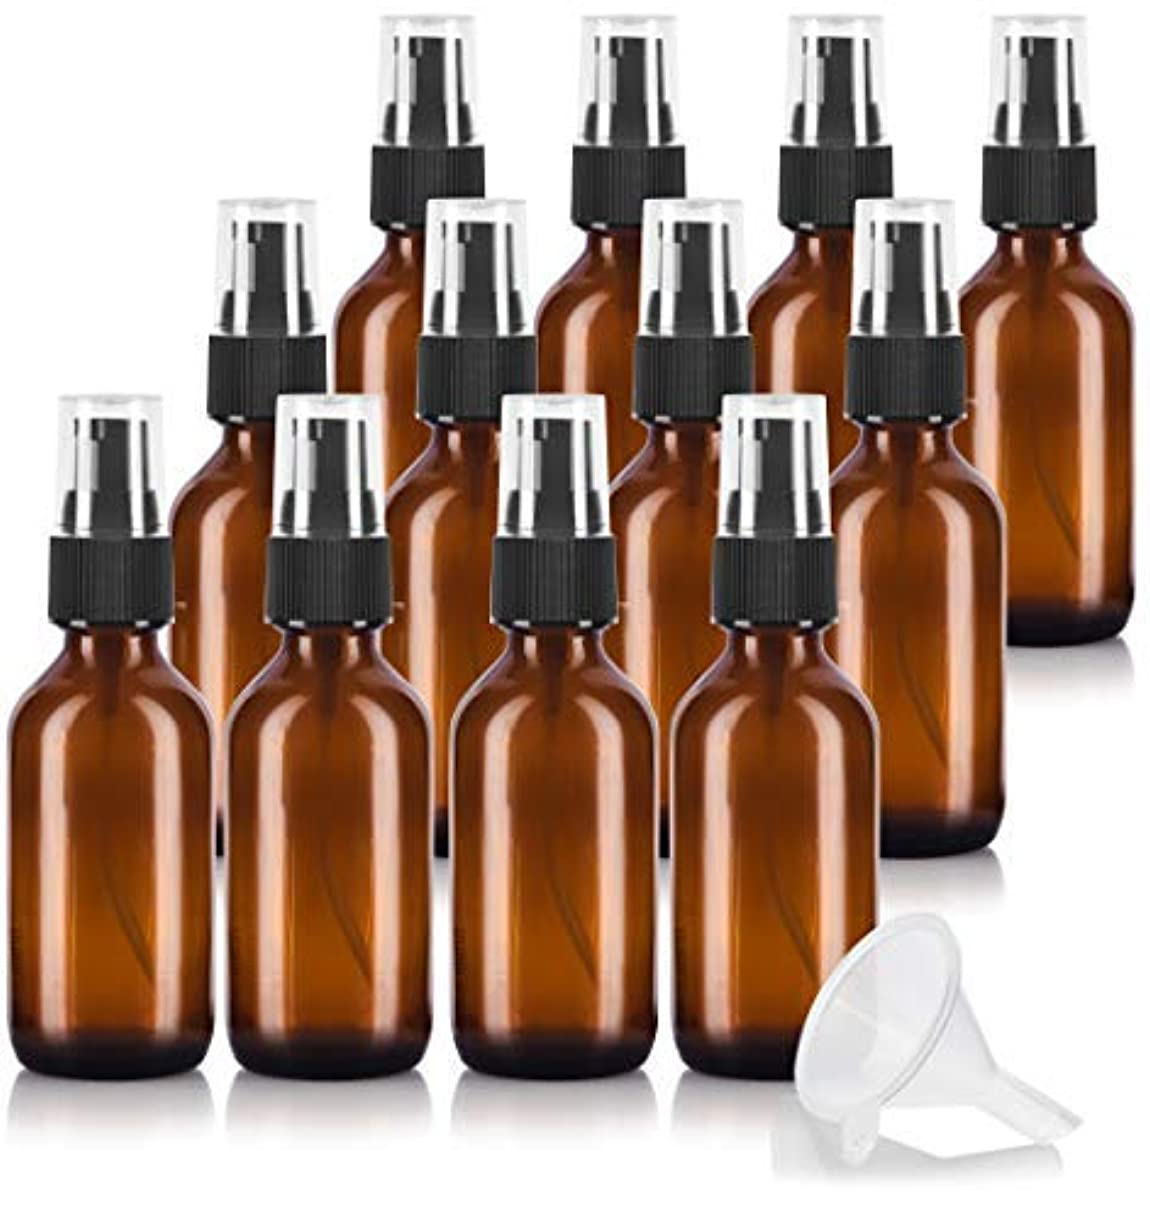 へこみ工場バランスのとれた2 oz Amber Glass Boston Round Treatment Pump Bottle (12 pack) + Funnel and Labels for essential oils, aromatherapy...